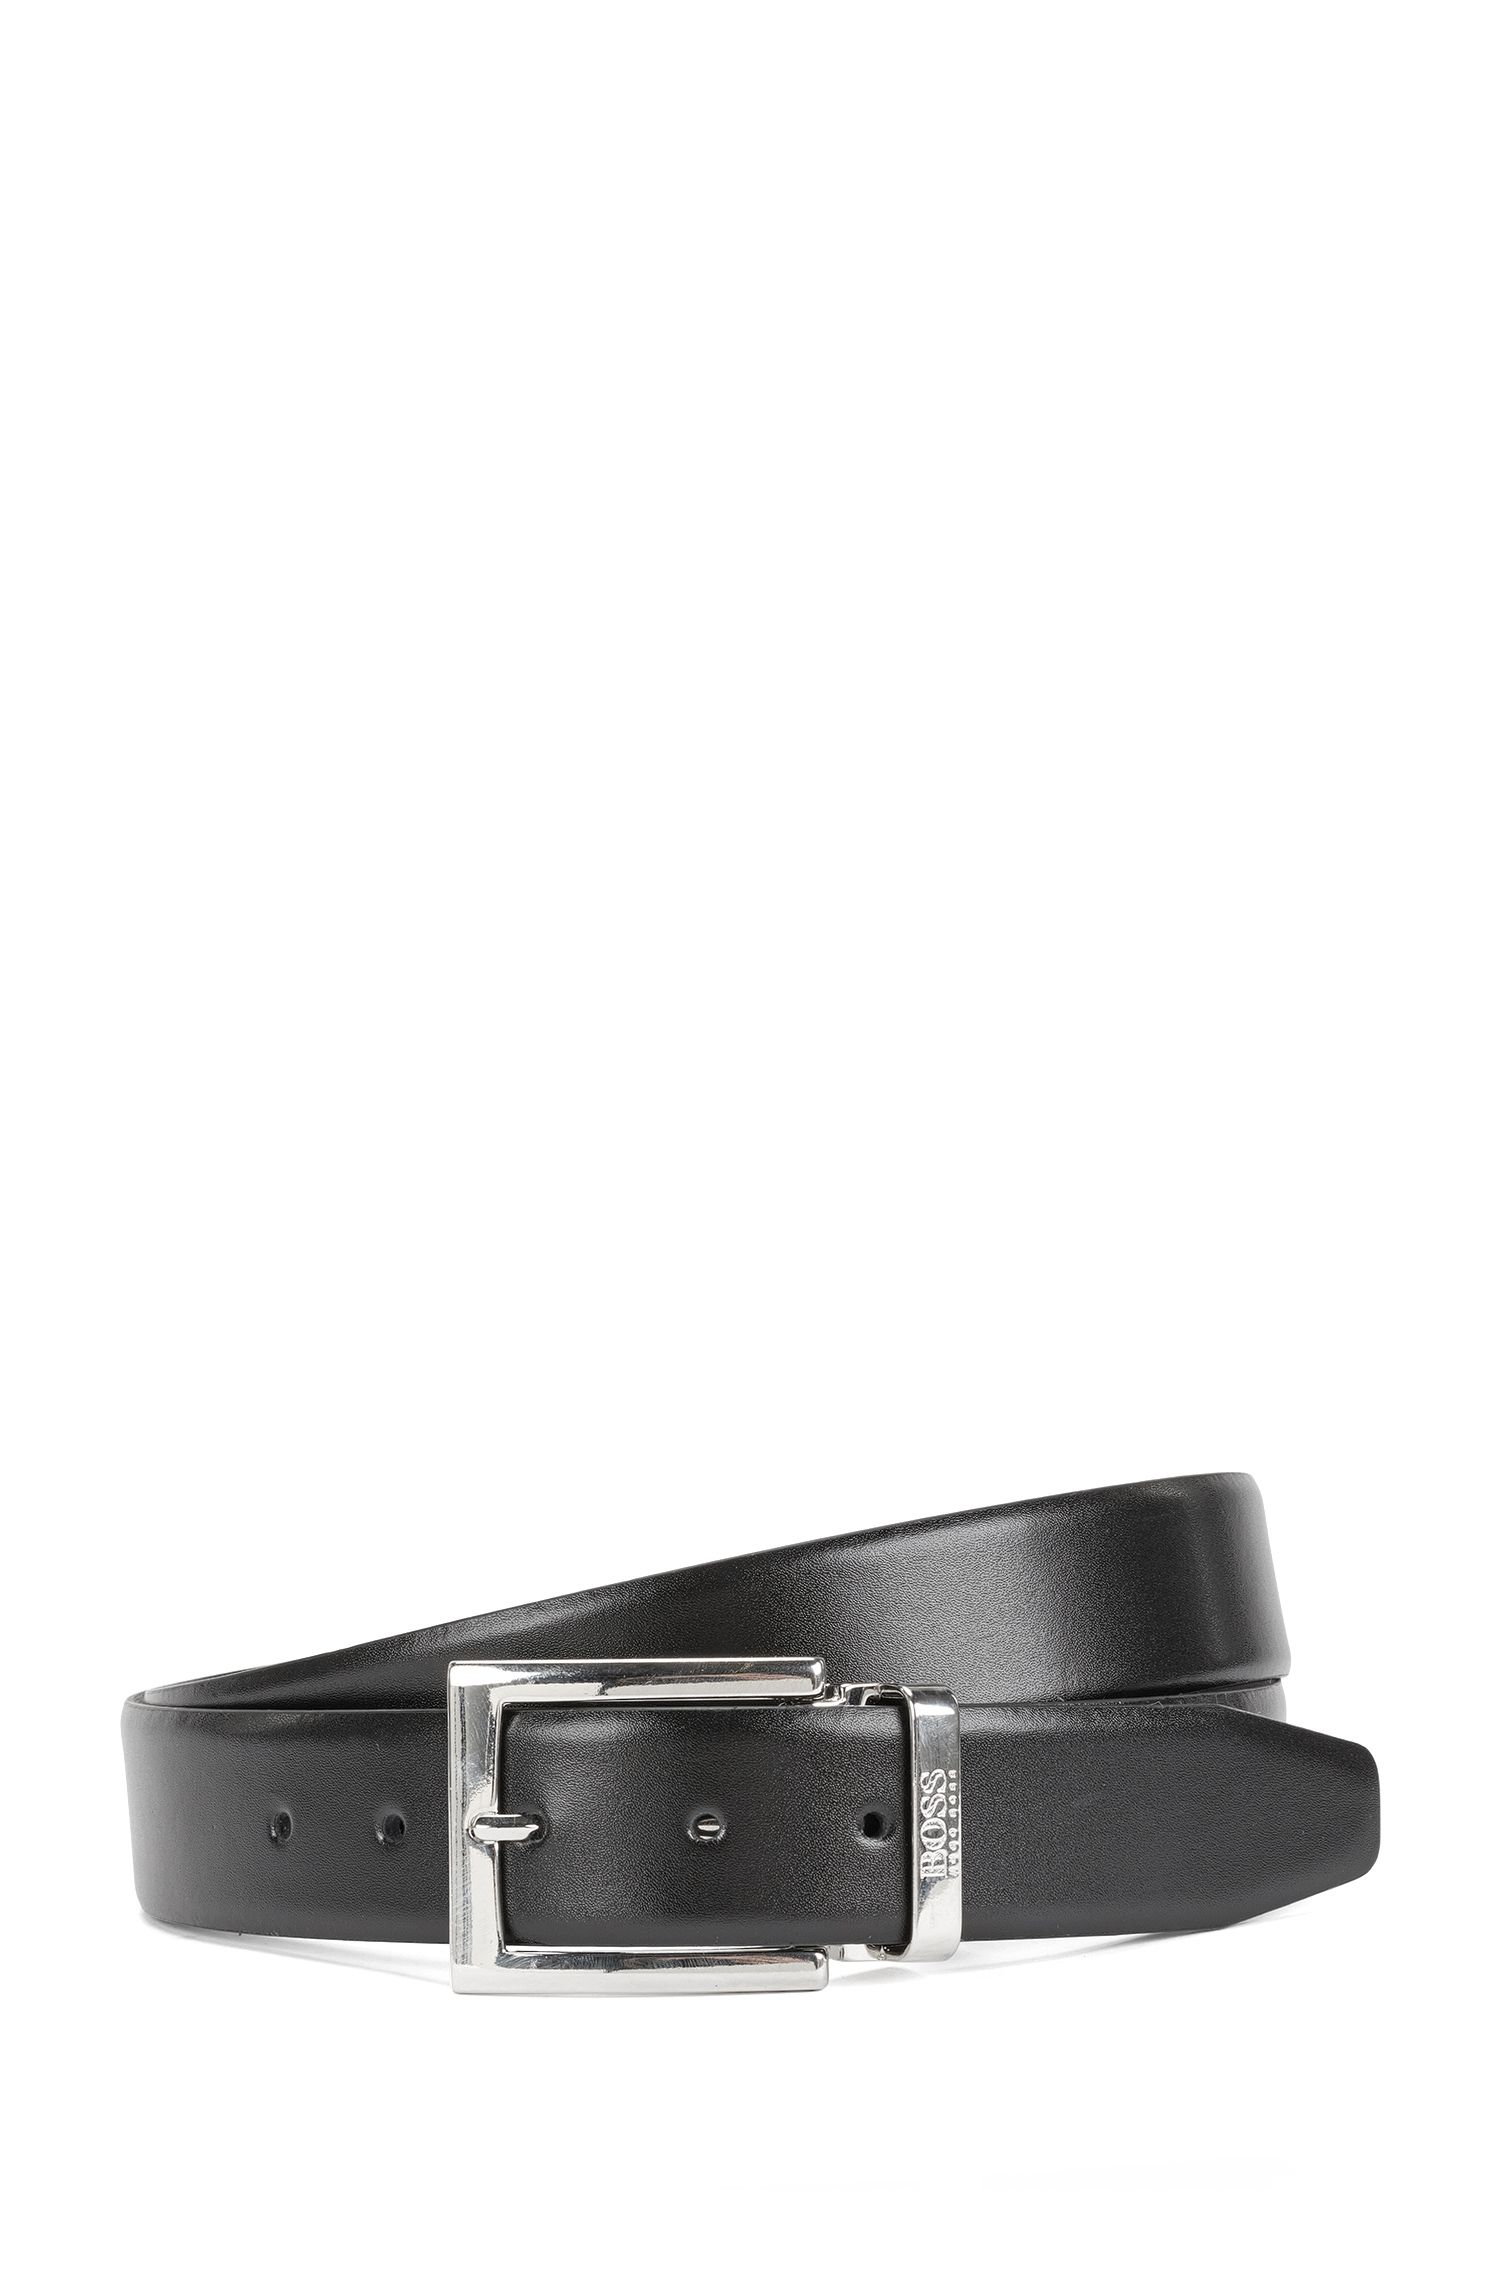 'Otravely Or35 Ps' | Leather Handcrafted Reversible Belt